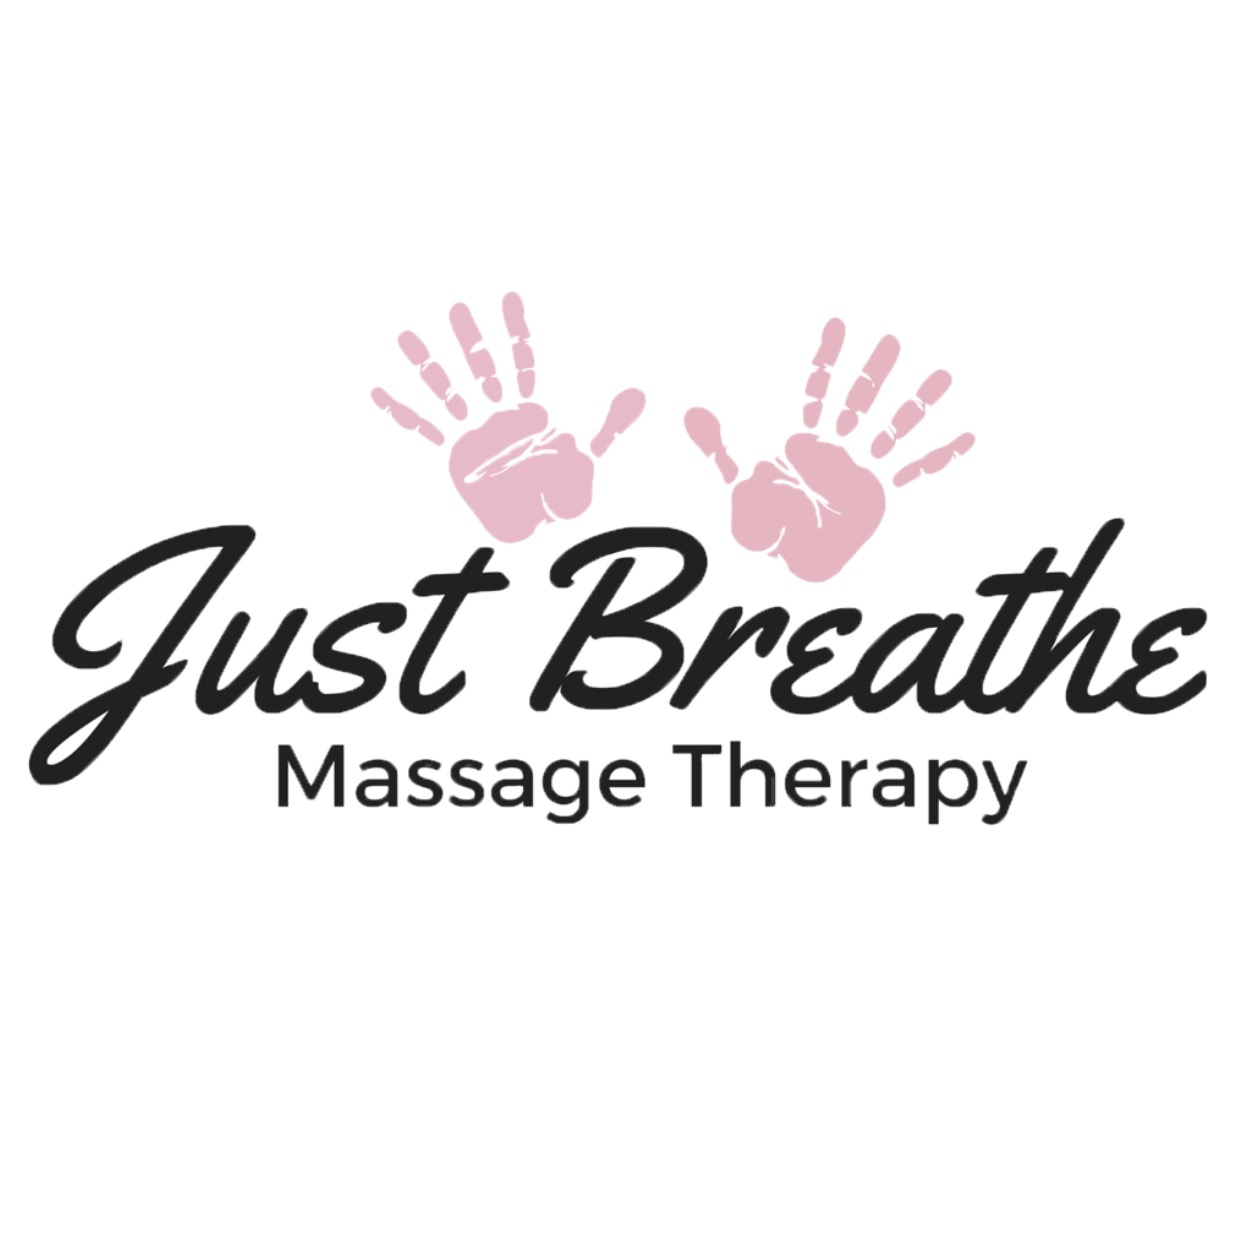 Just Breathe Massage Therapy